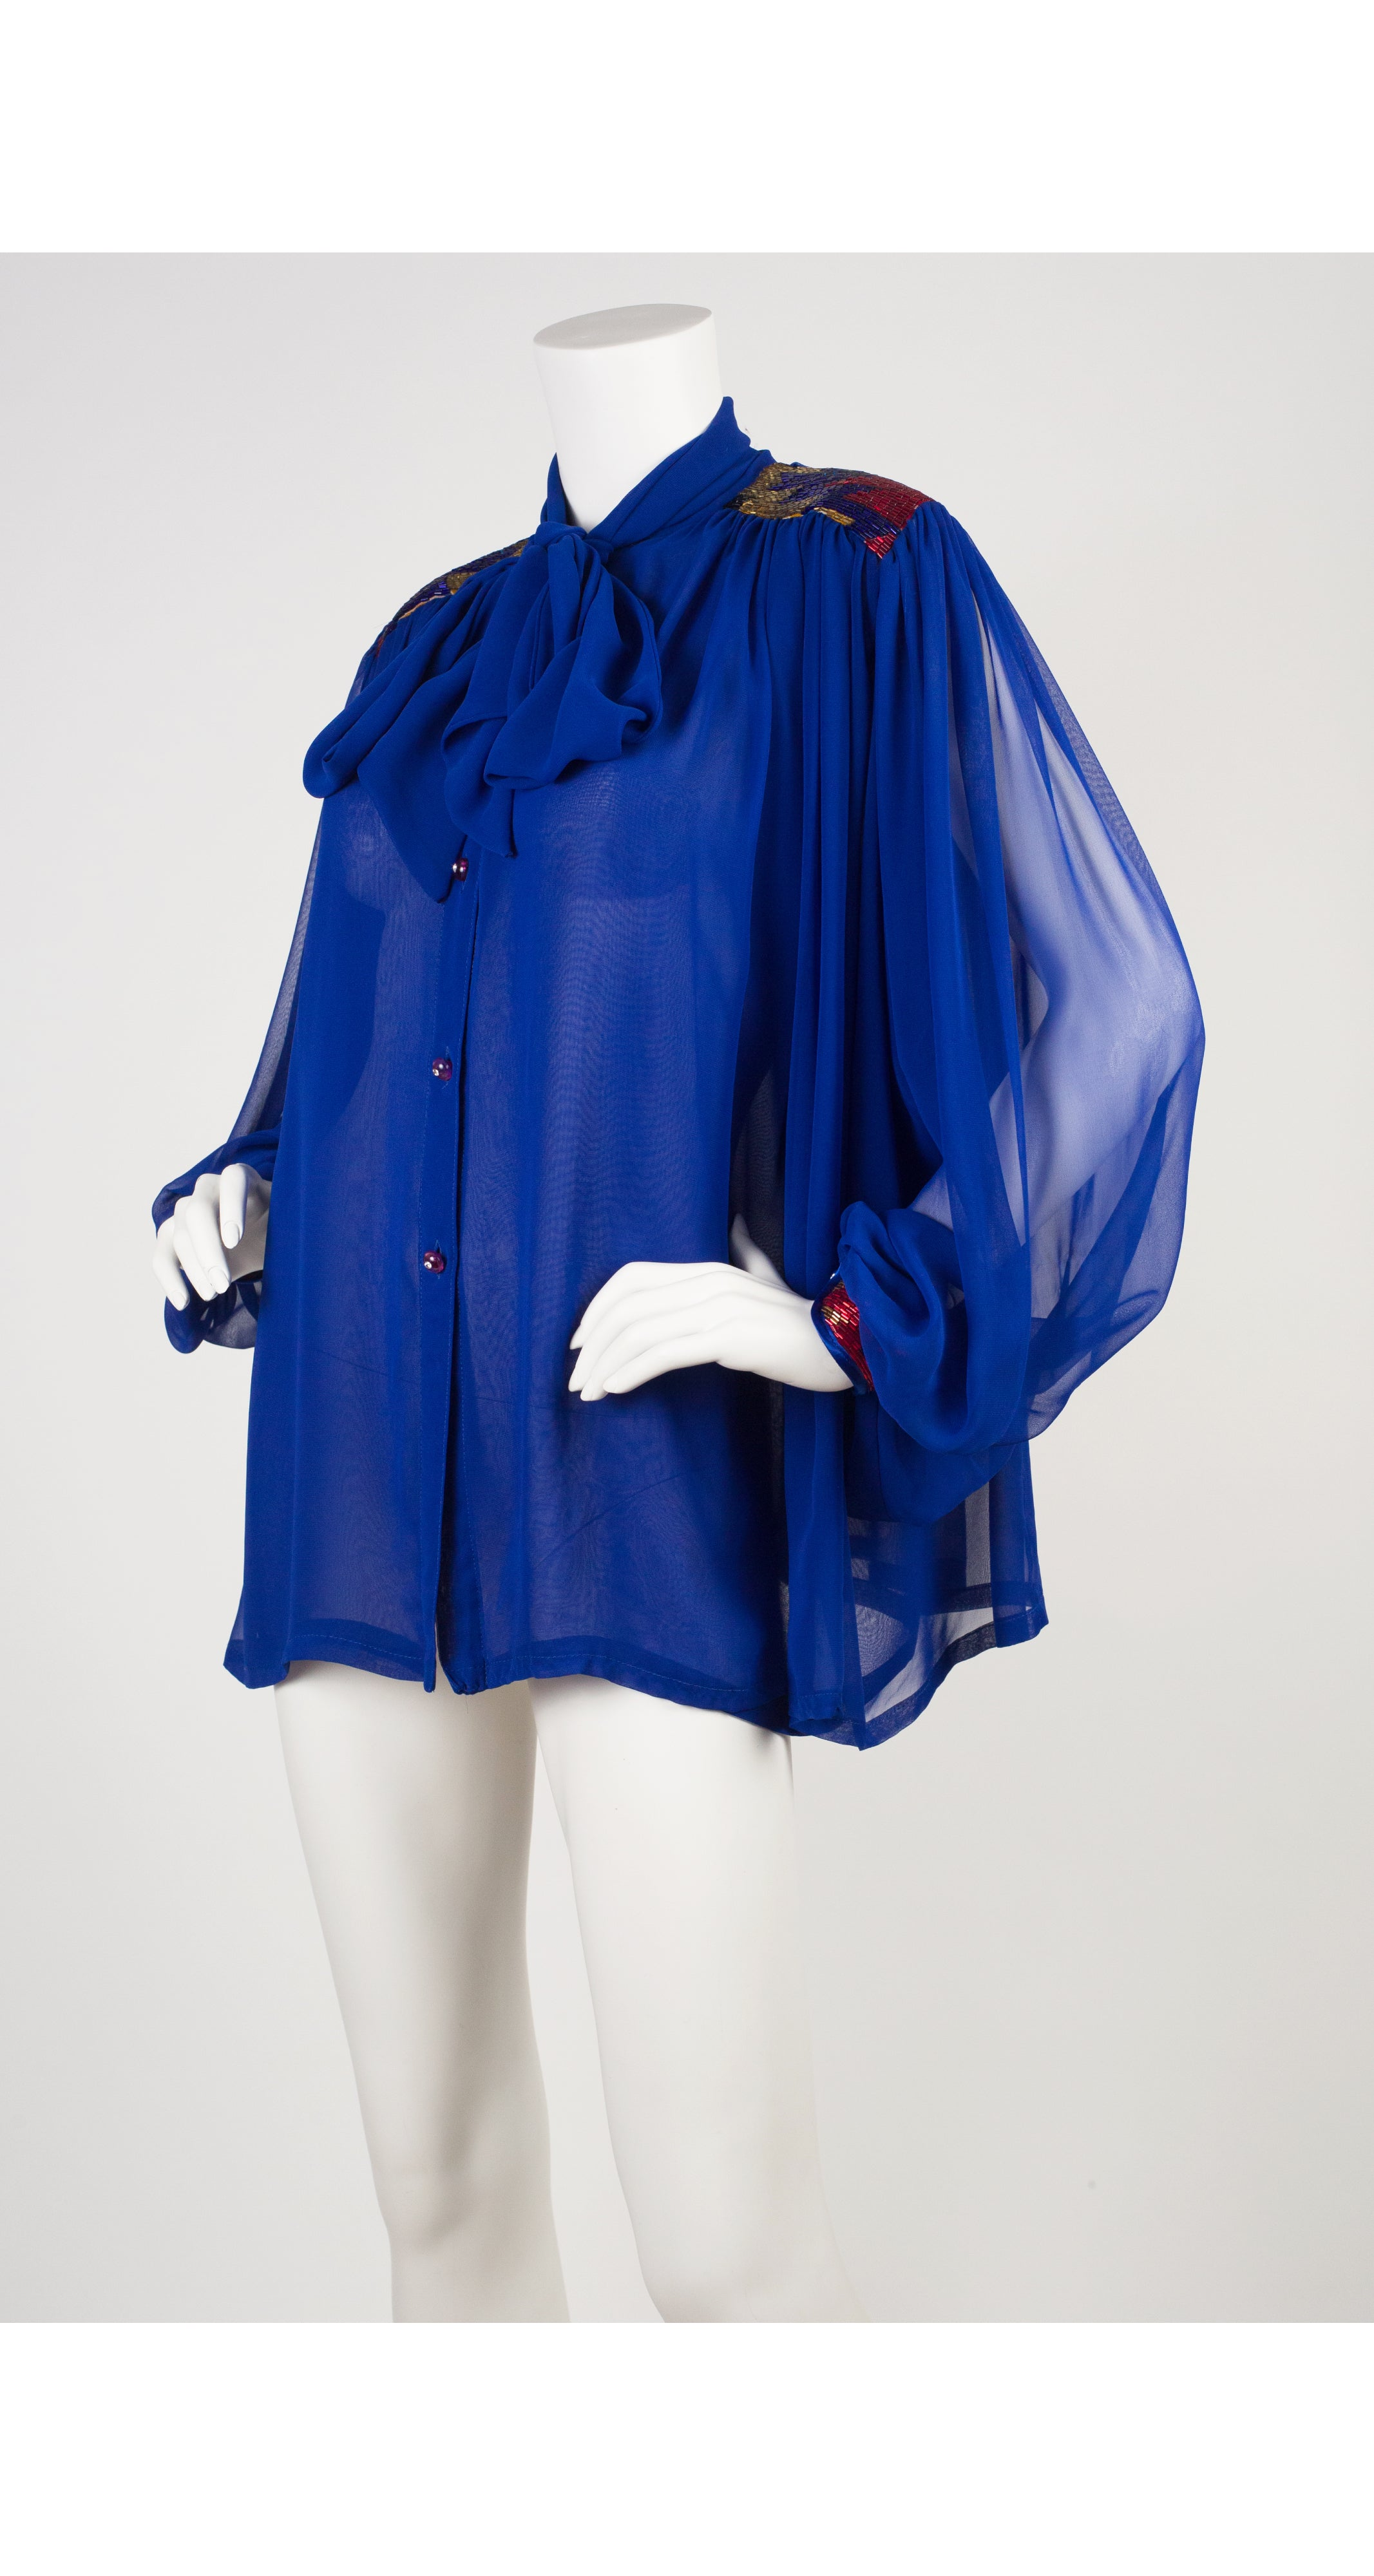 1980s Blue Chiffon Bugle Bead Balloon Sleeve Blouse